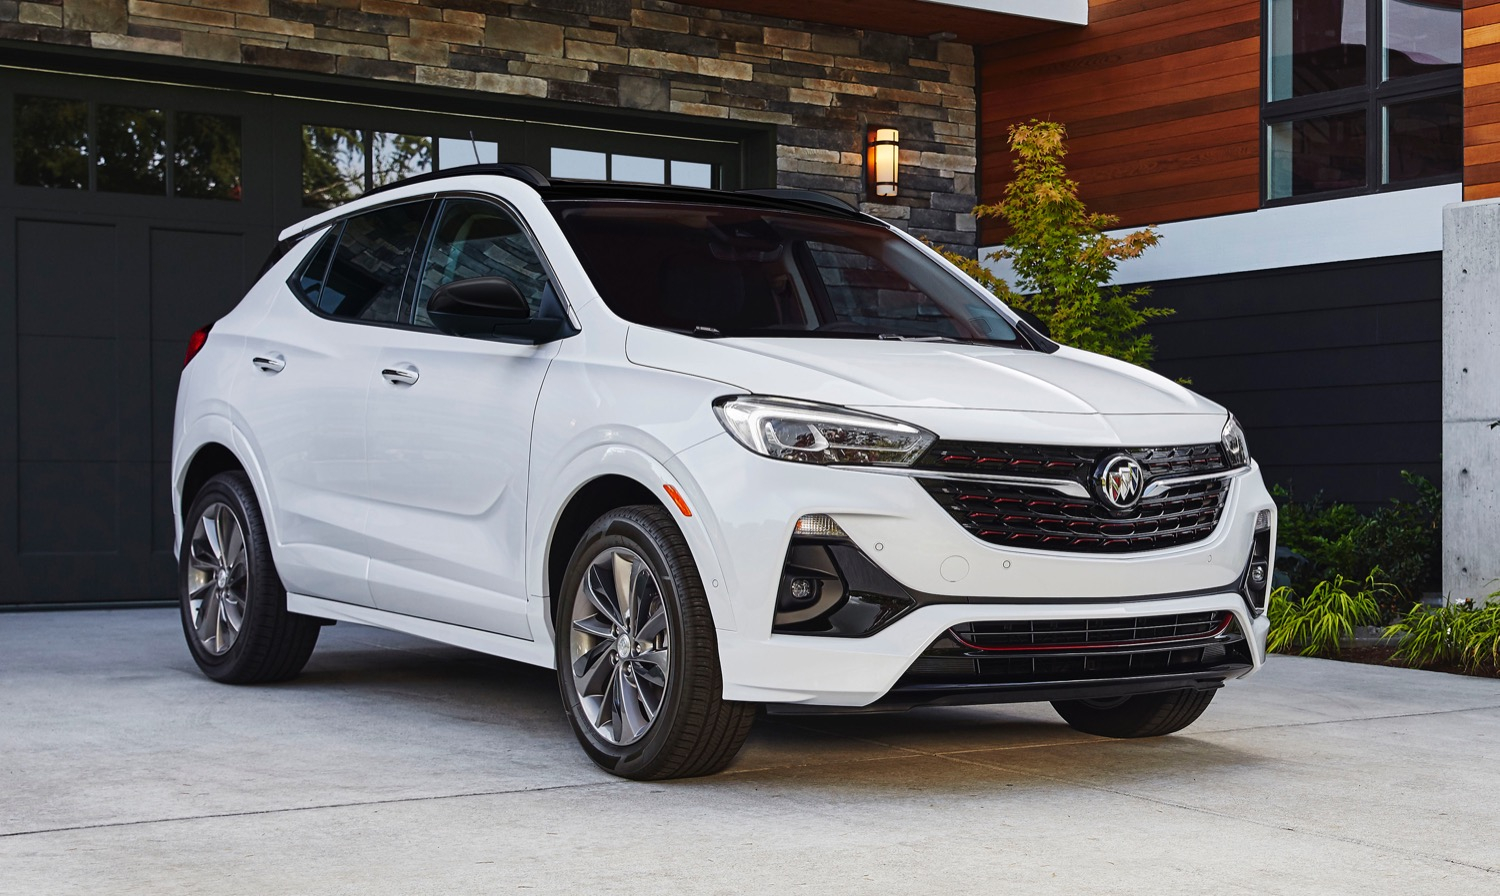 2020 Buick Encore Gx Vs. Buick Encore: Weight Comparison New 2022 Buick Encore Essence Reviews, Fwd, Specs